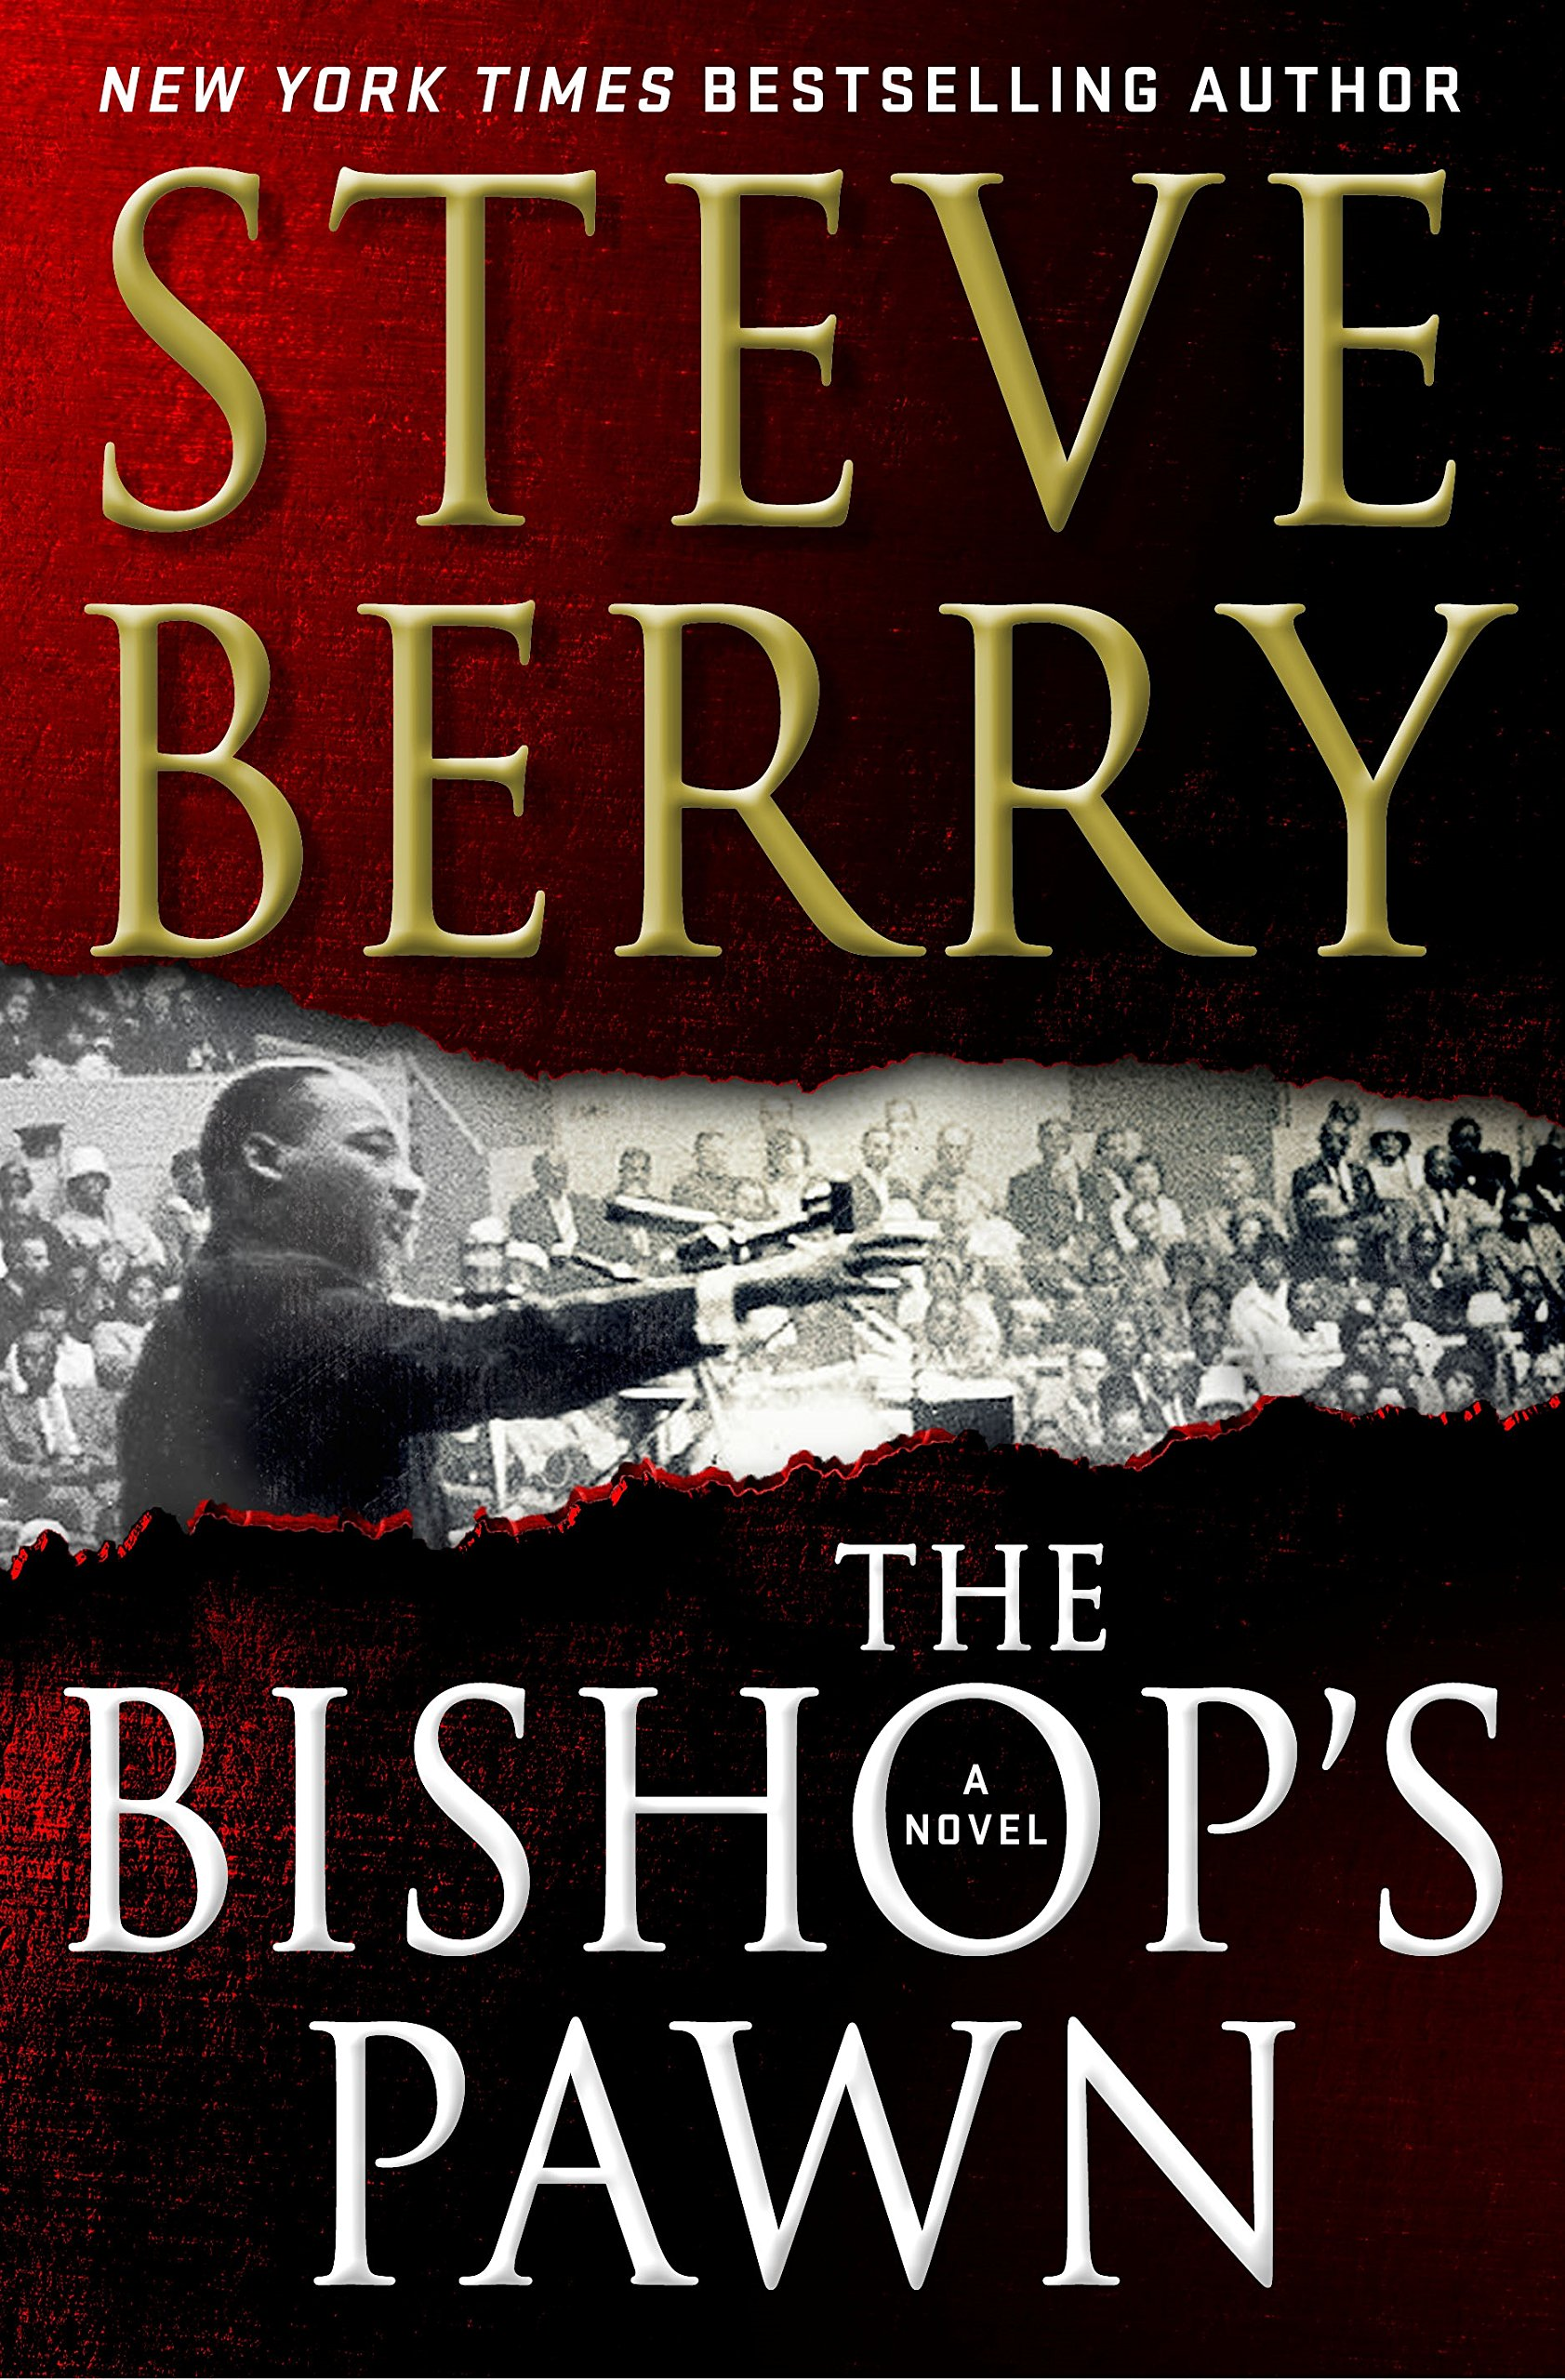 The Bishop's Pawn (International Edition)